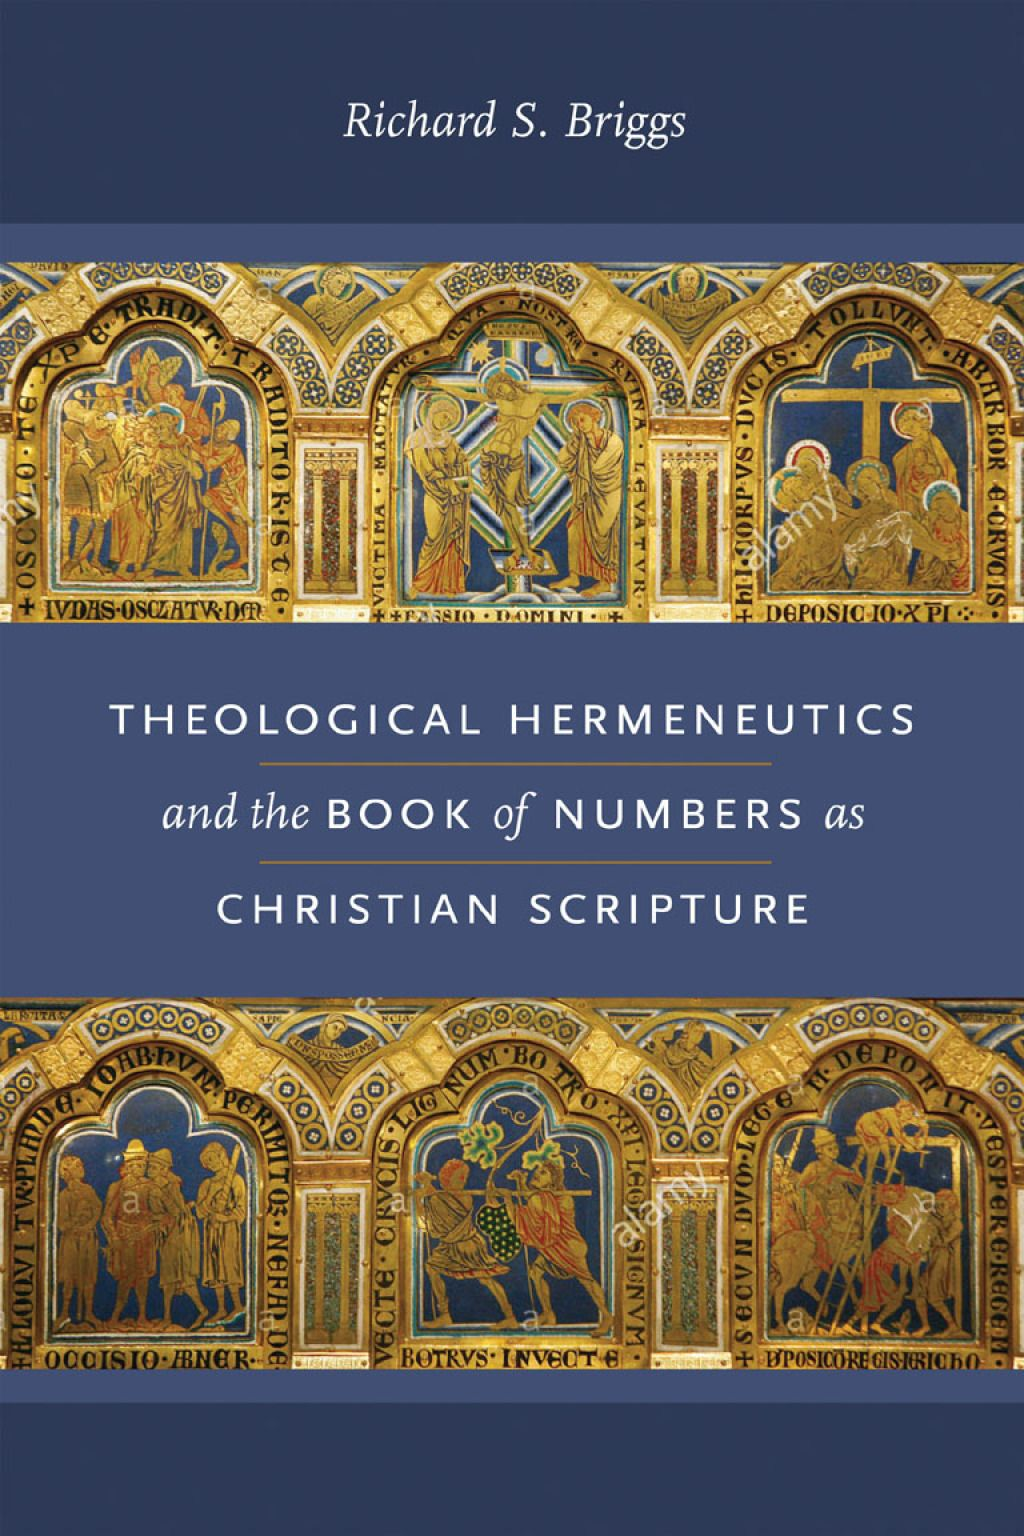 Theological Hermeneutics and the Book of Numbers as